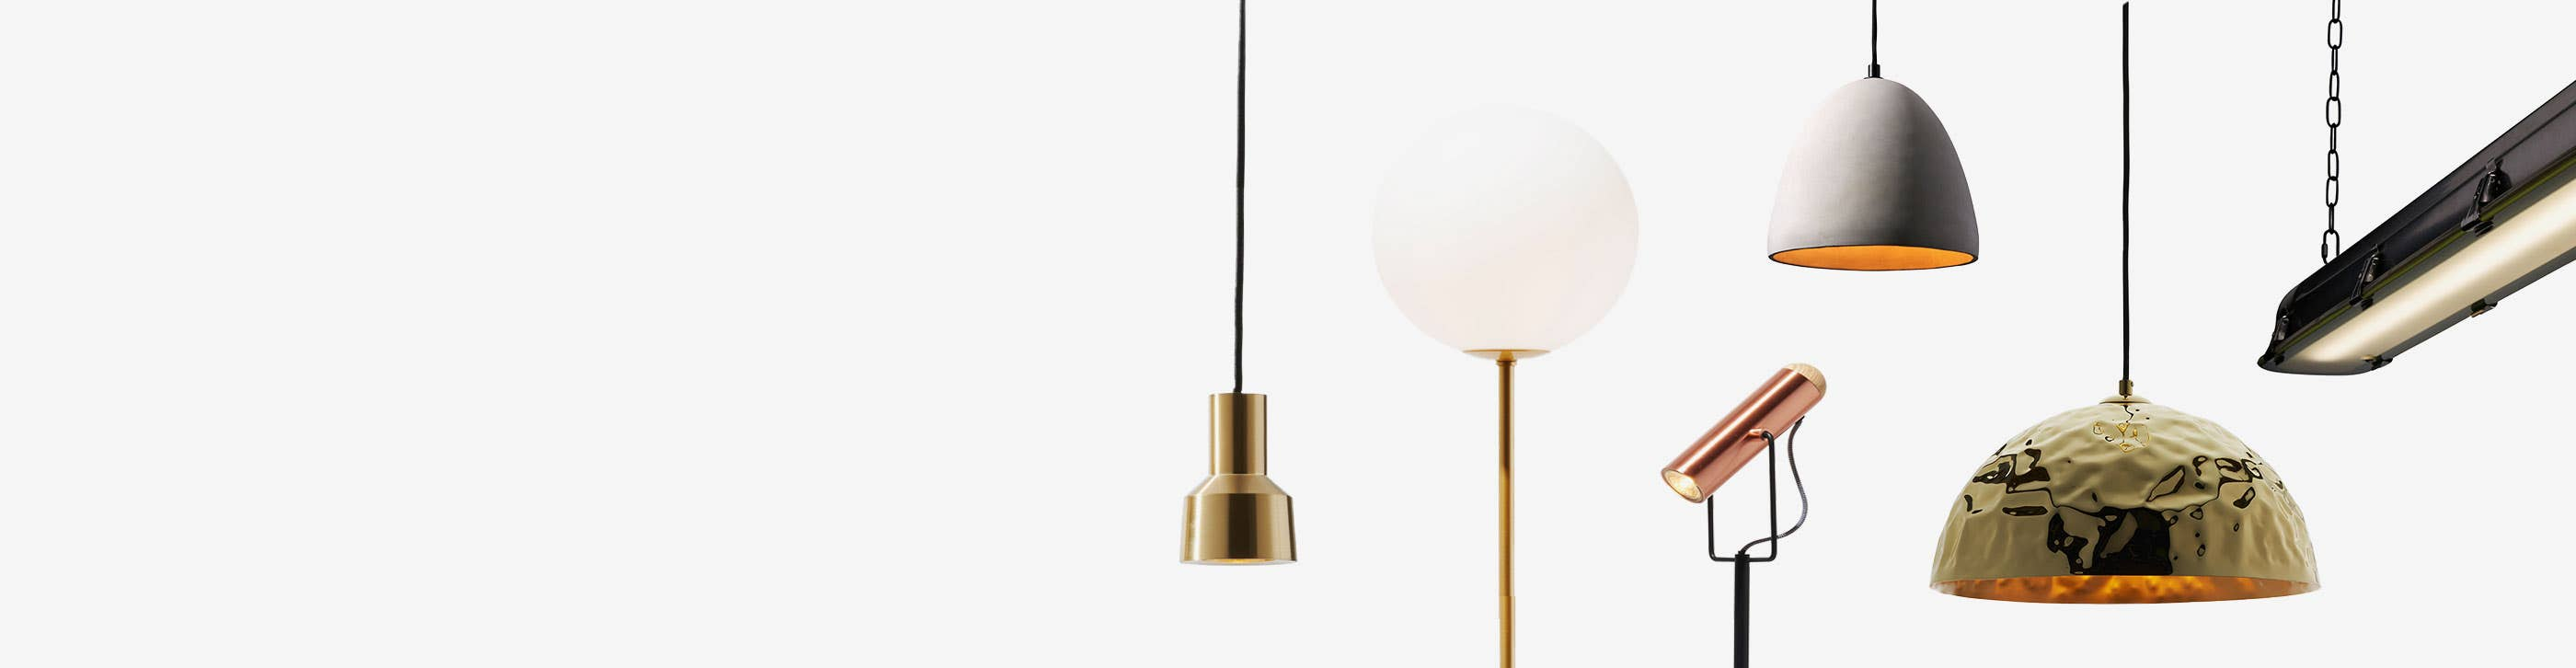 Six different lighting fixtures from Industry West